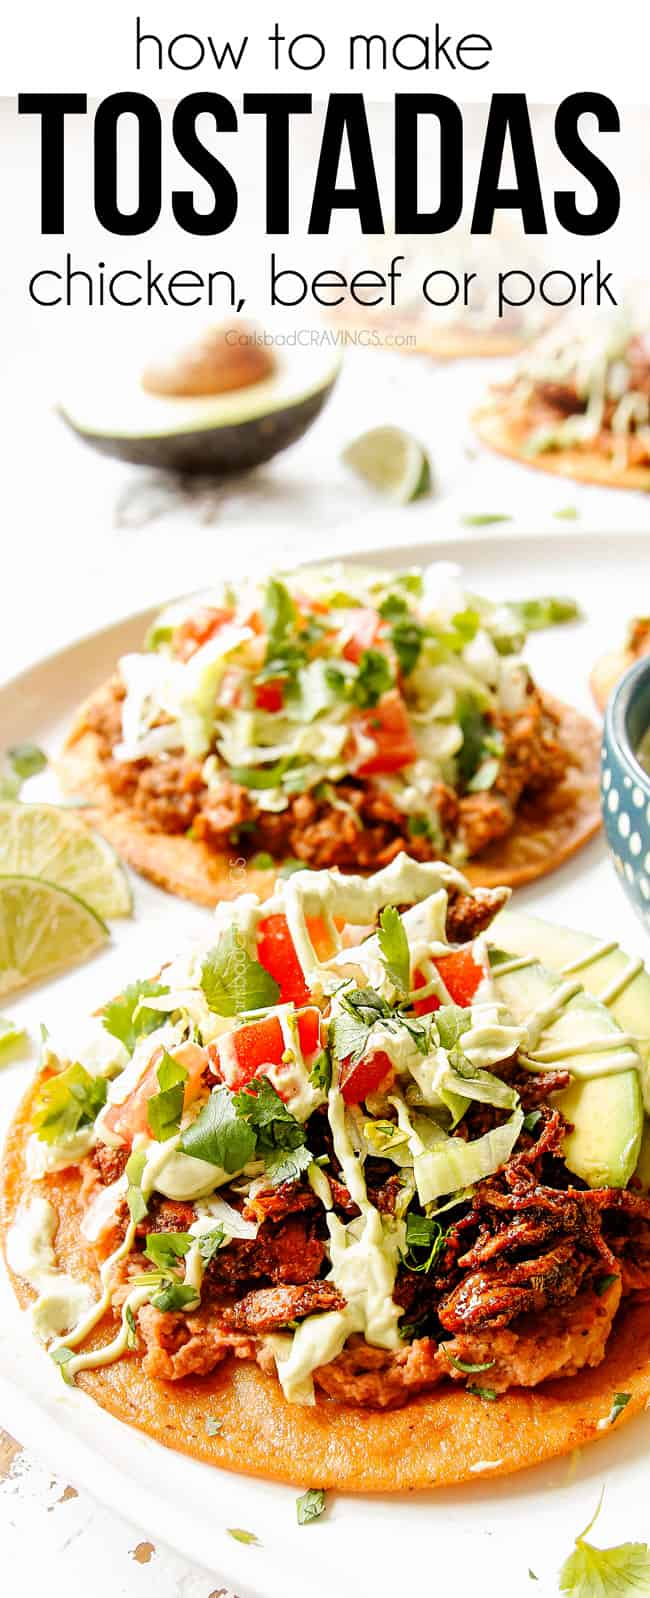 showing how to top tostada shells by adding beans, cheese, beef, lettuce, tomatoes and sour cream